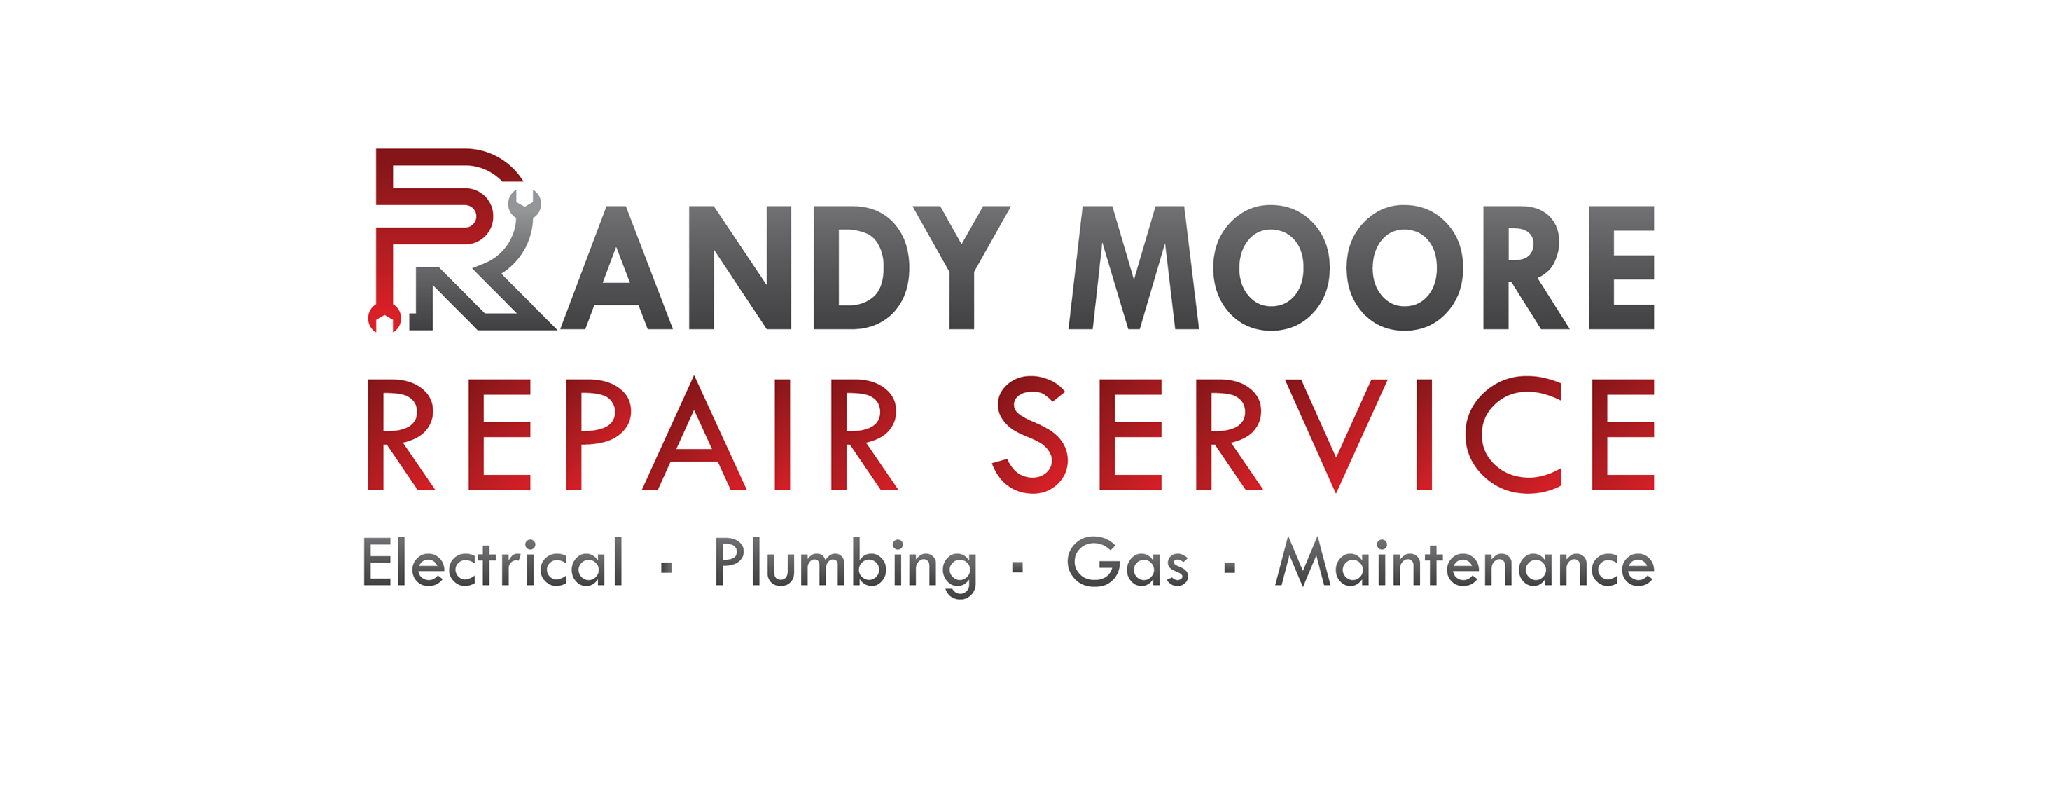 Randy Moore Repair Service